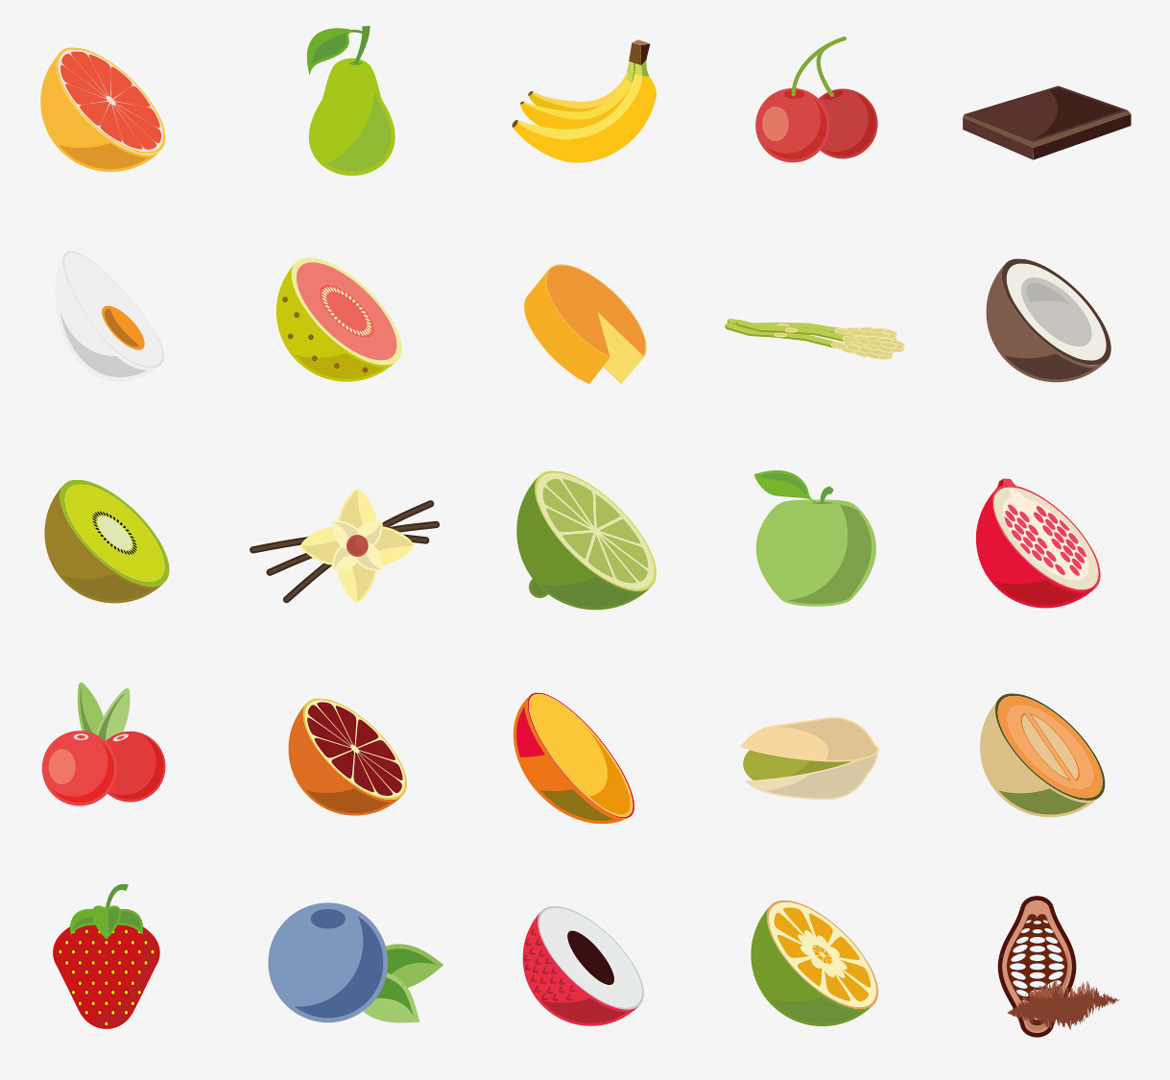 blokstudio_myicecreamlab_icons_001